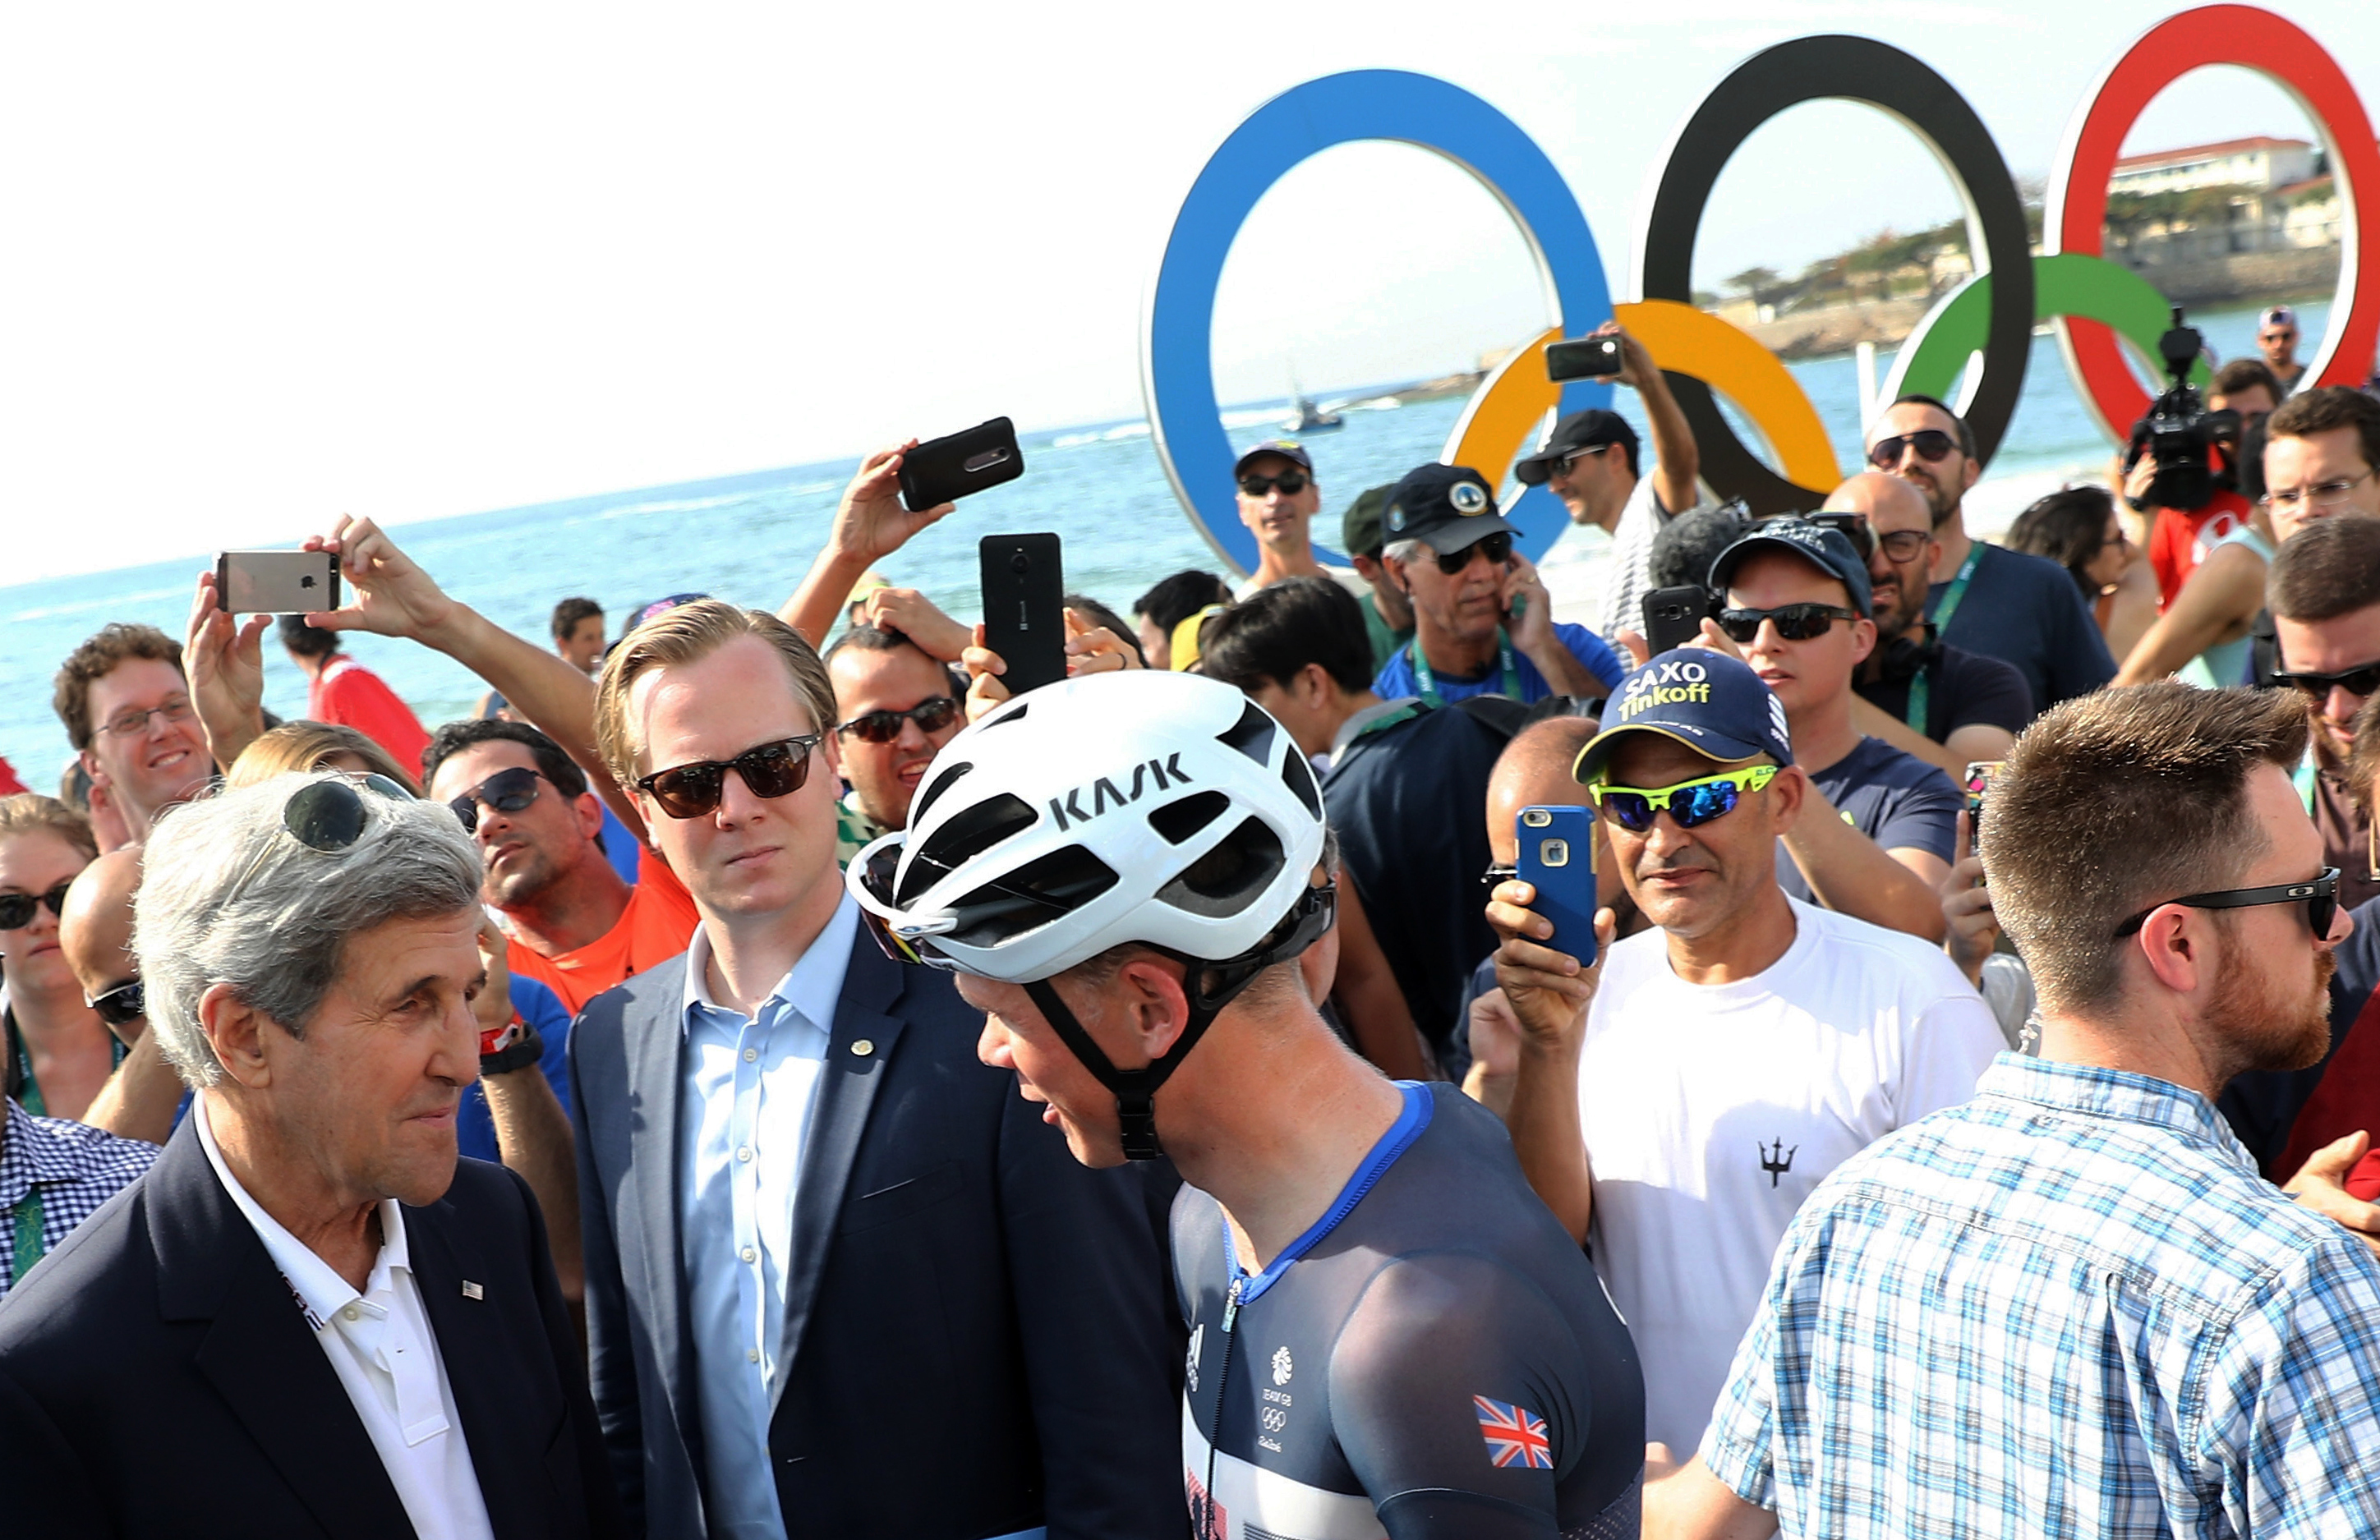 U.S. Secretary of State John Kerry, left, talks with Christopher Froome, of Britain, before the men's cycling road race final at the 2016 Summer Olympics in Rio de Janeiro, Brazil, Saturday, Aug. 6, 2016. (Bryn Lennon/Pool Photo via AP)